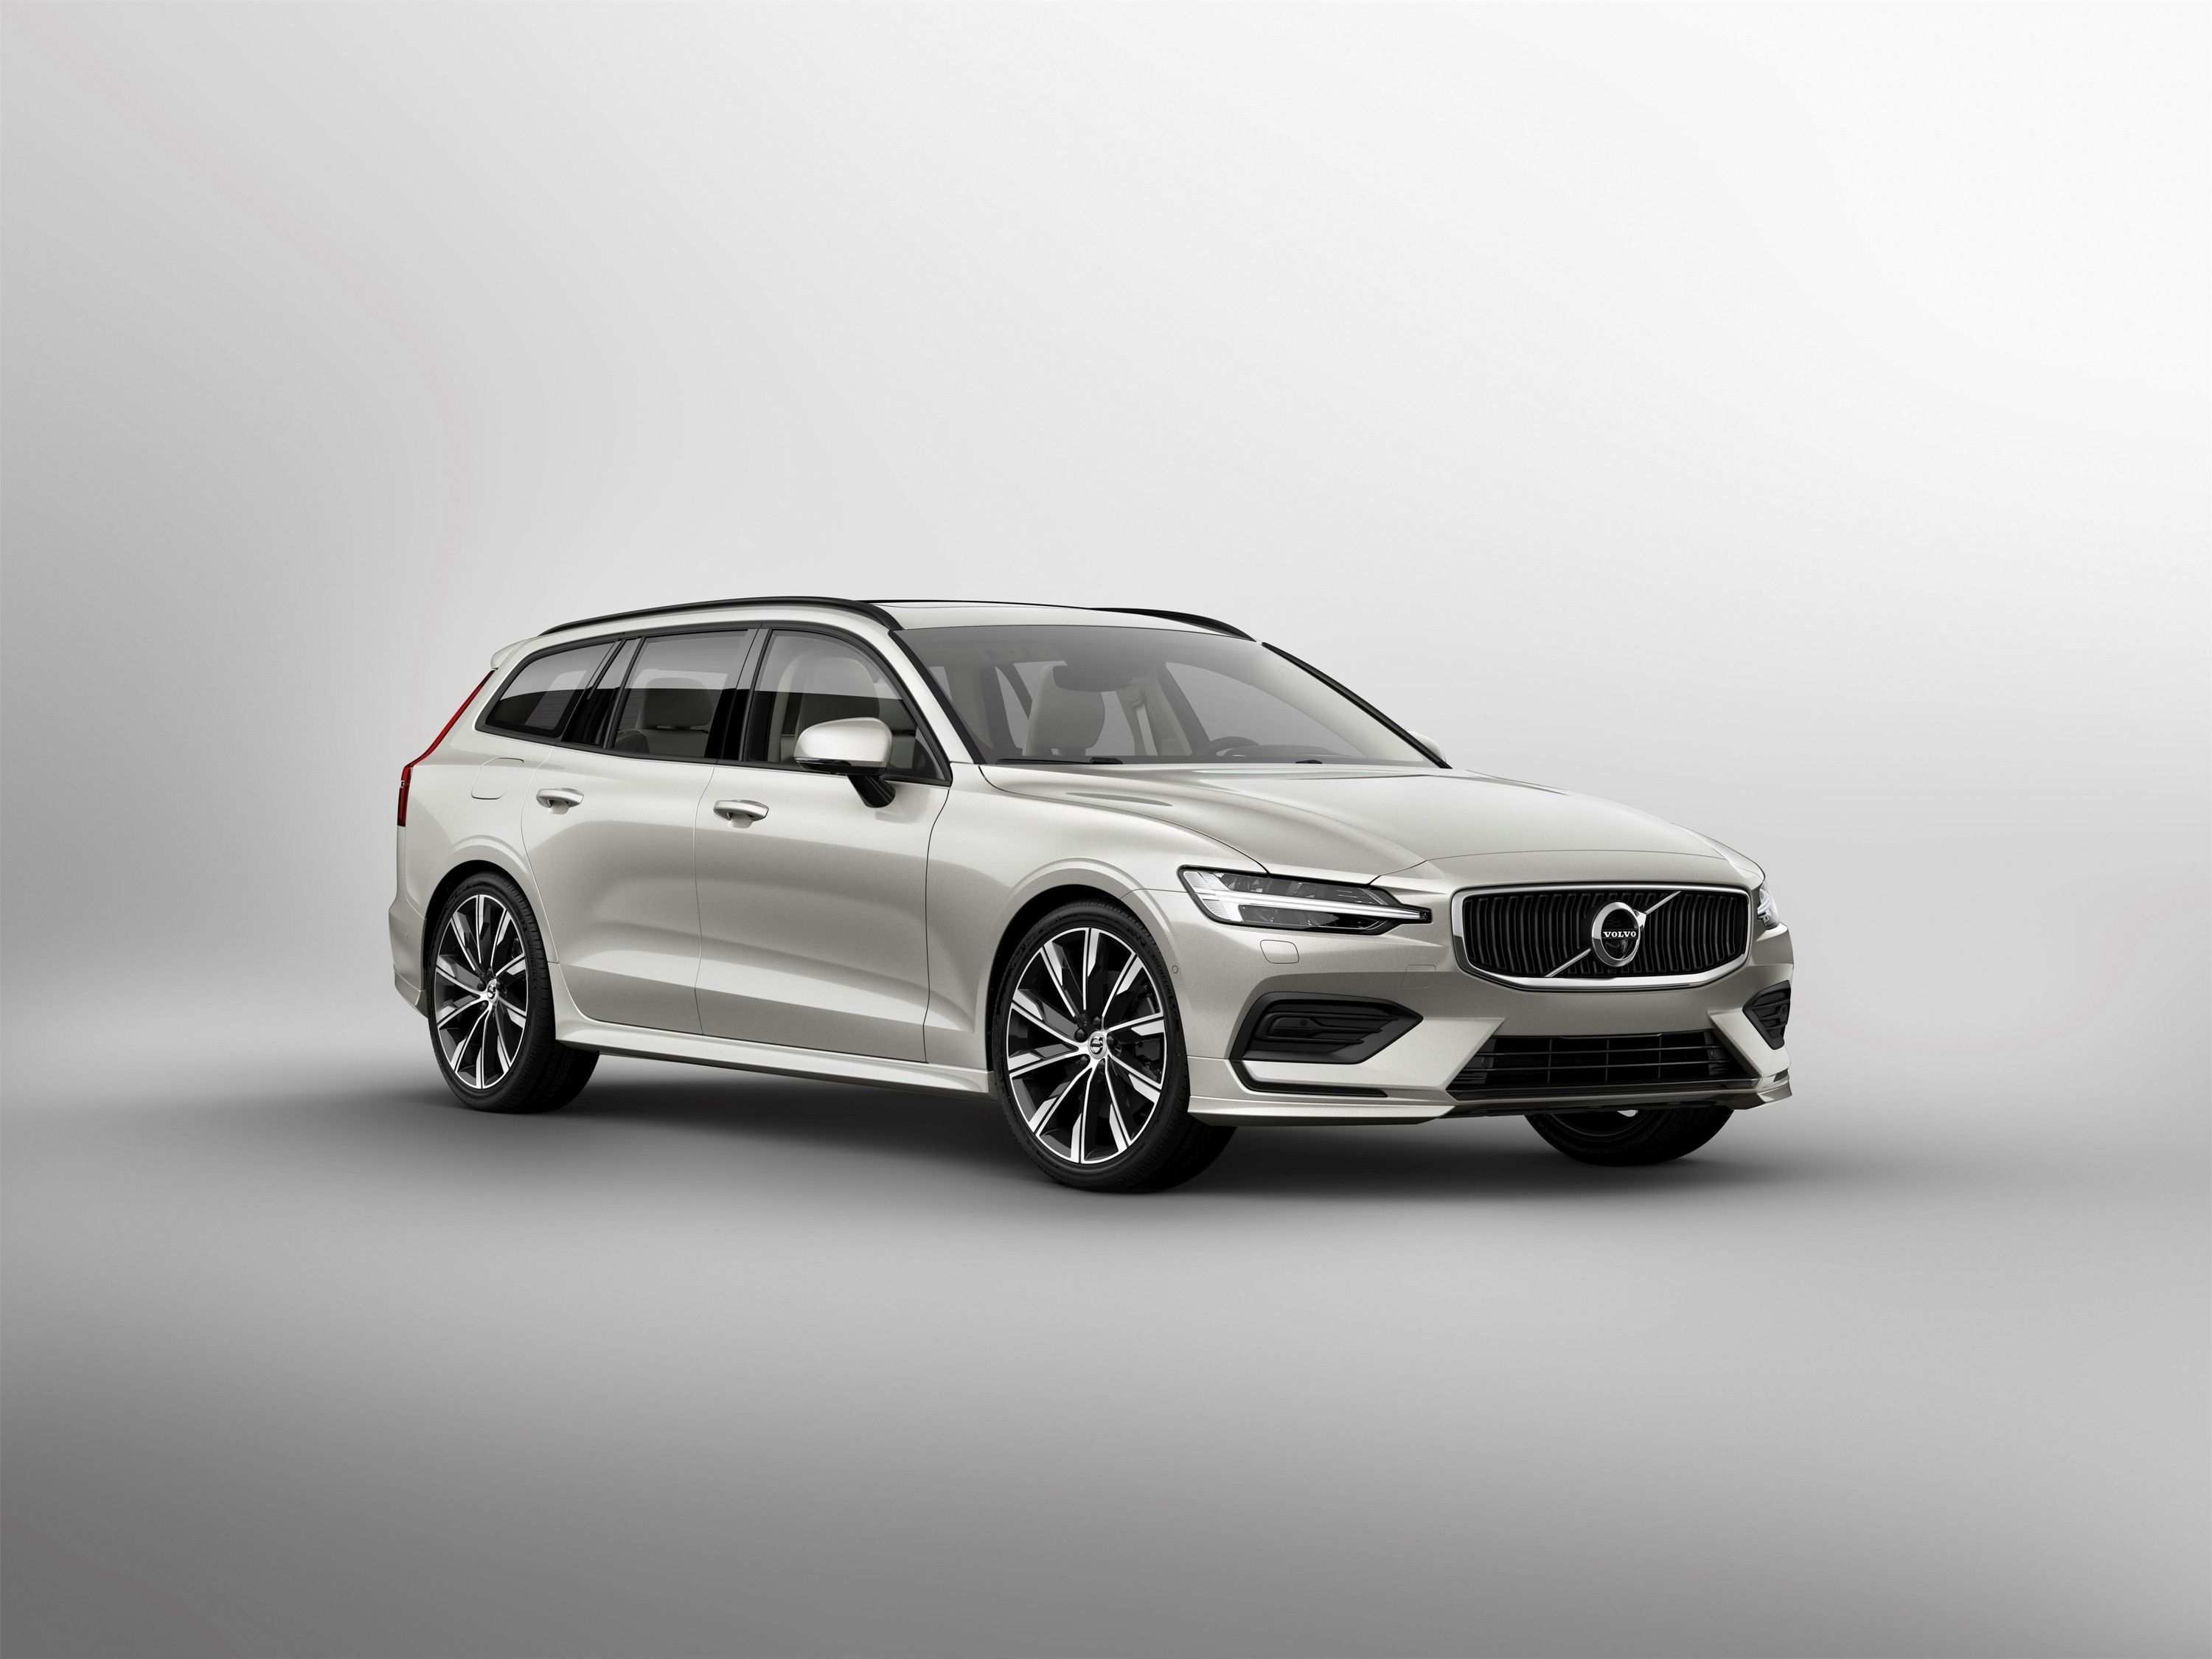 37 Great Volvo Wagon V60 2019 Price And Release Date Spesification by Volvo Wagon V60 2019 Price And Release Date